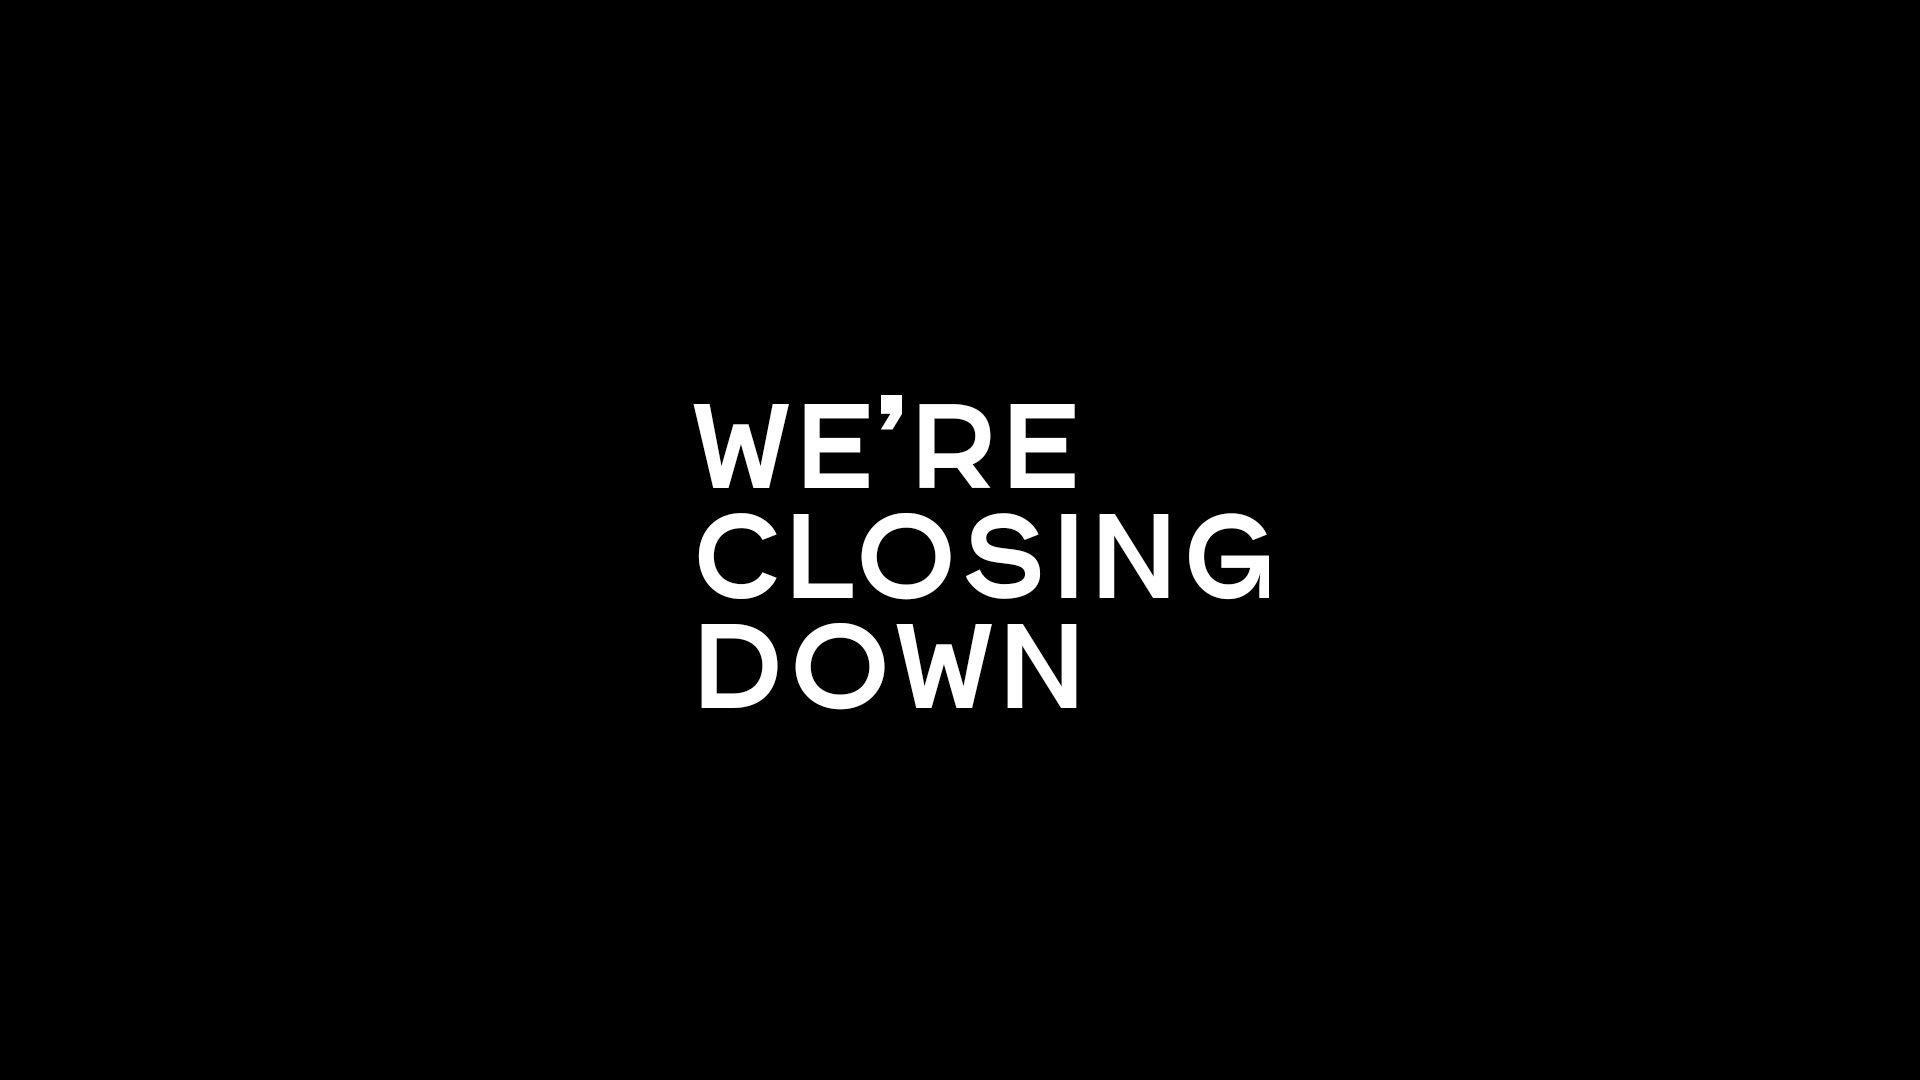 We're closing down